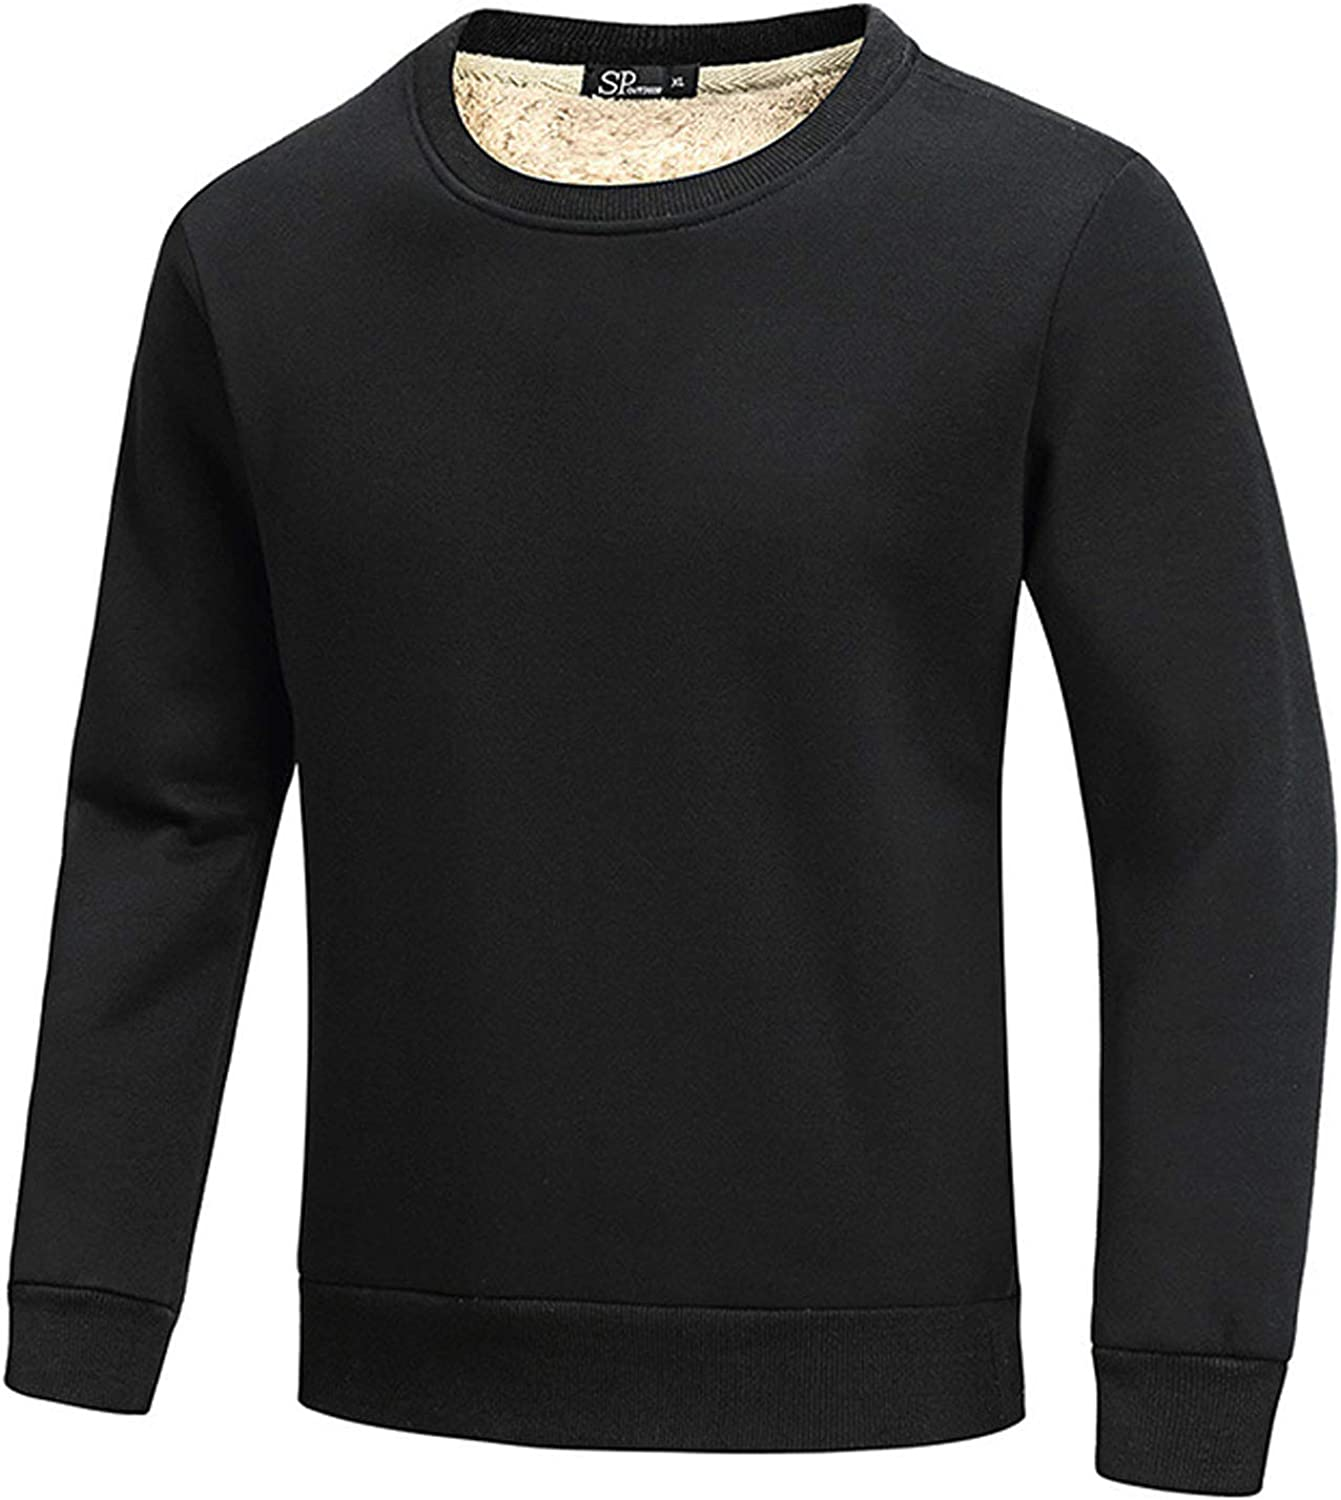 Flygo Mens Warm Thick Sherpa Fleece Crewneck Lined Pu Recommended Online limited product Sweatshirt